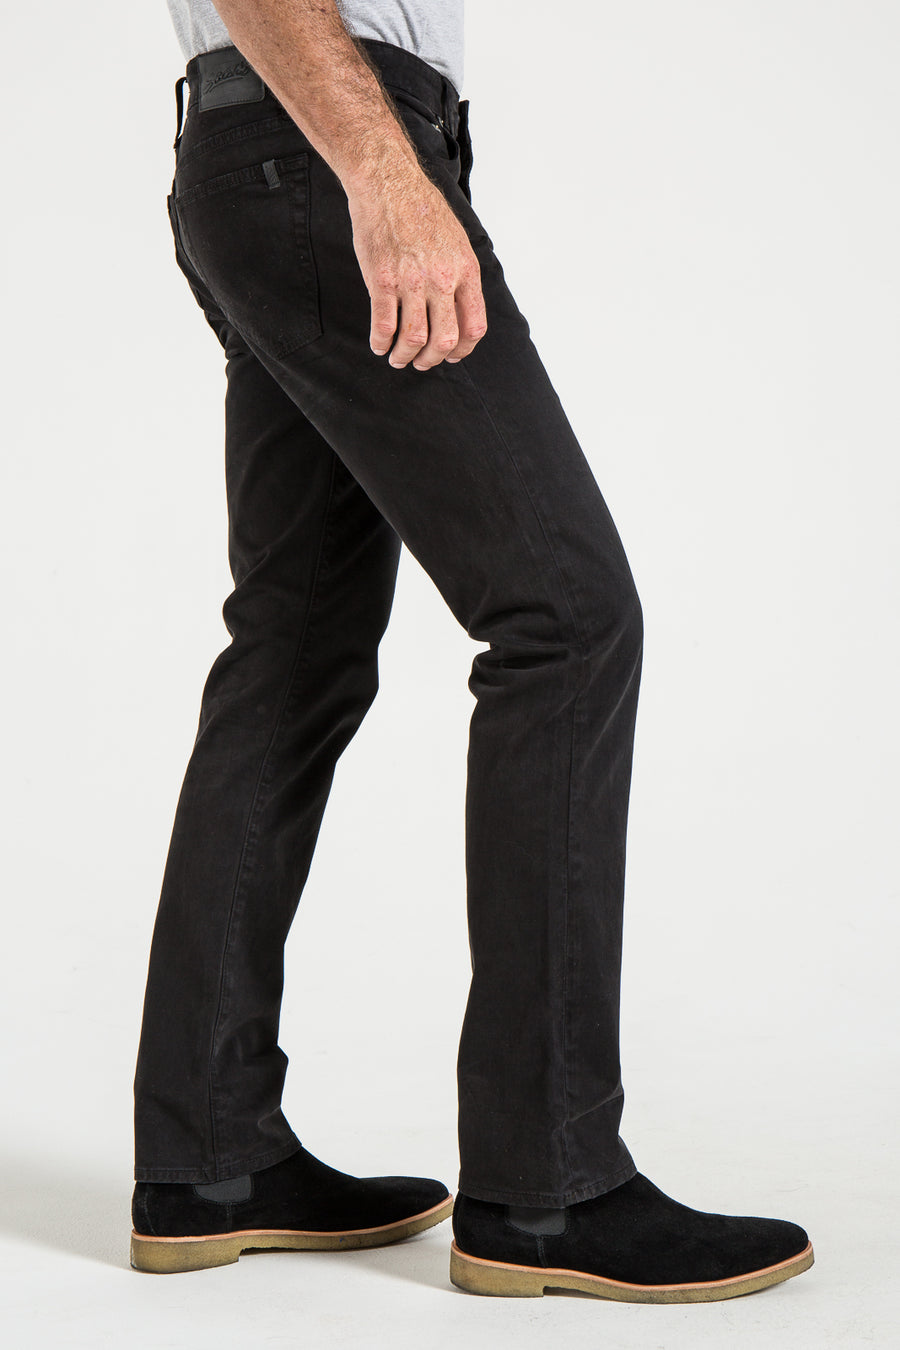 BARFLY SLIM IN BLACK SATEEN TWILL